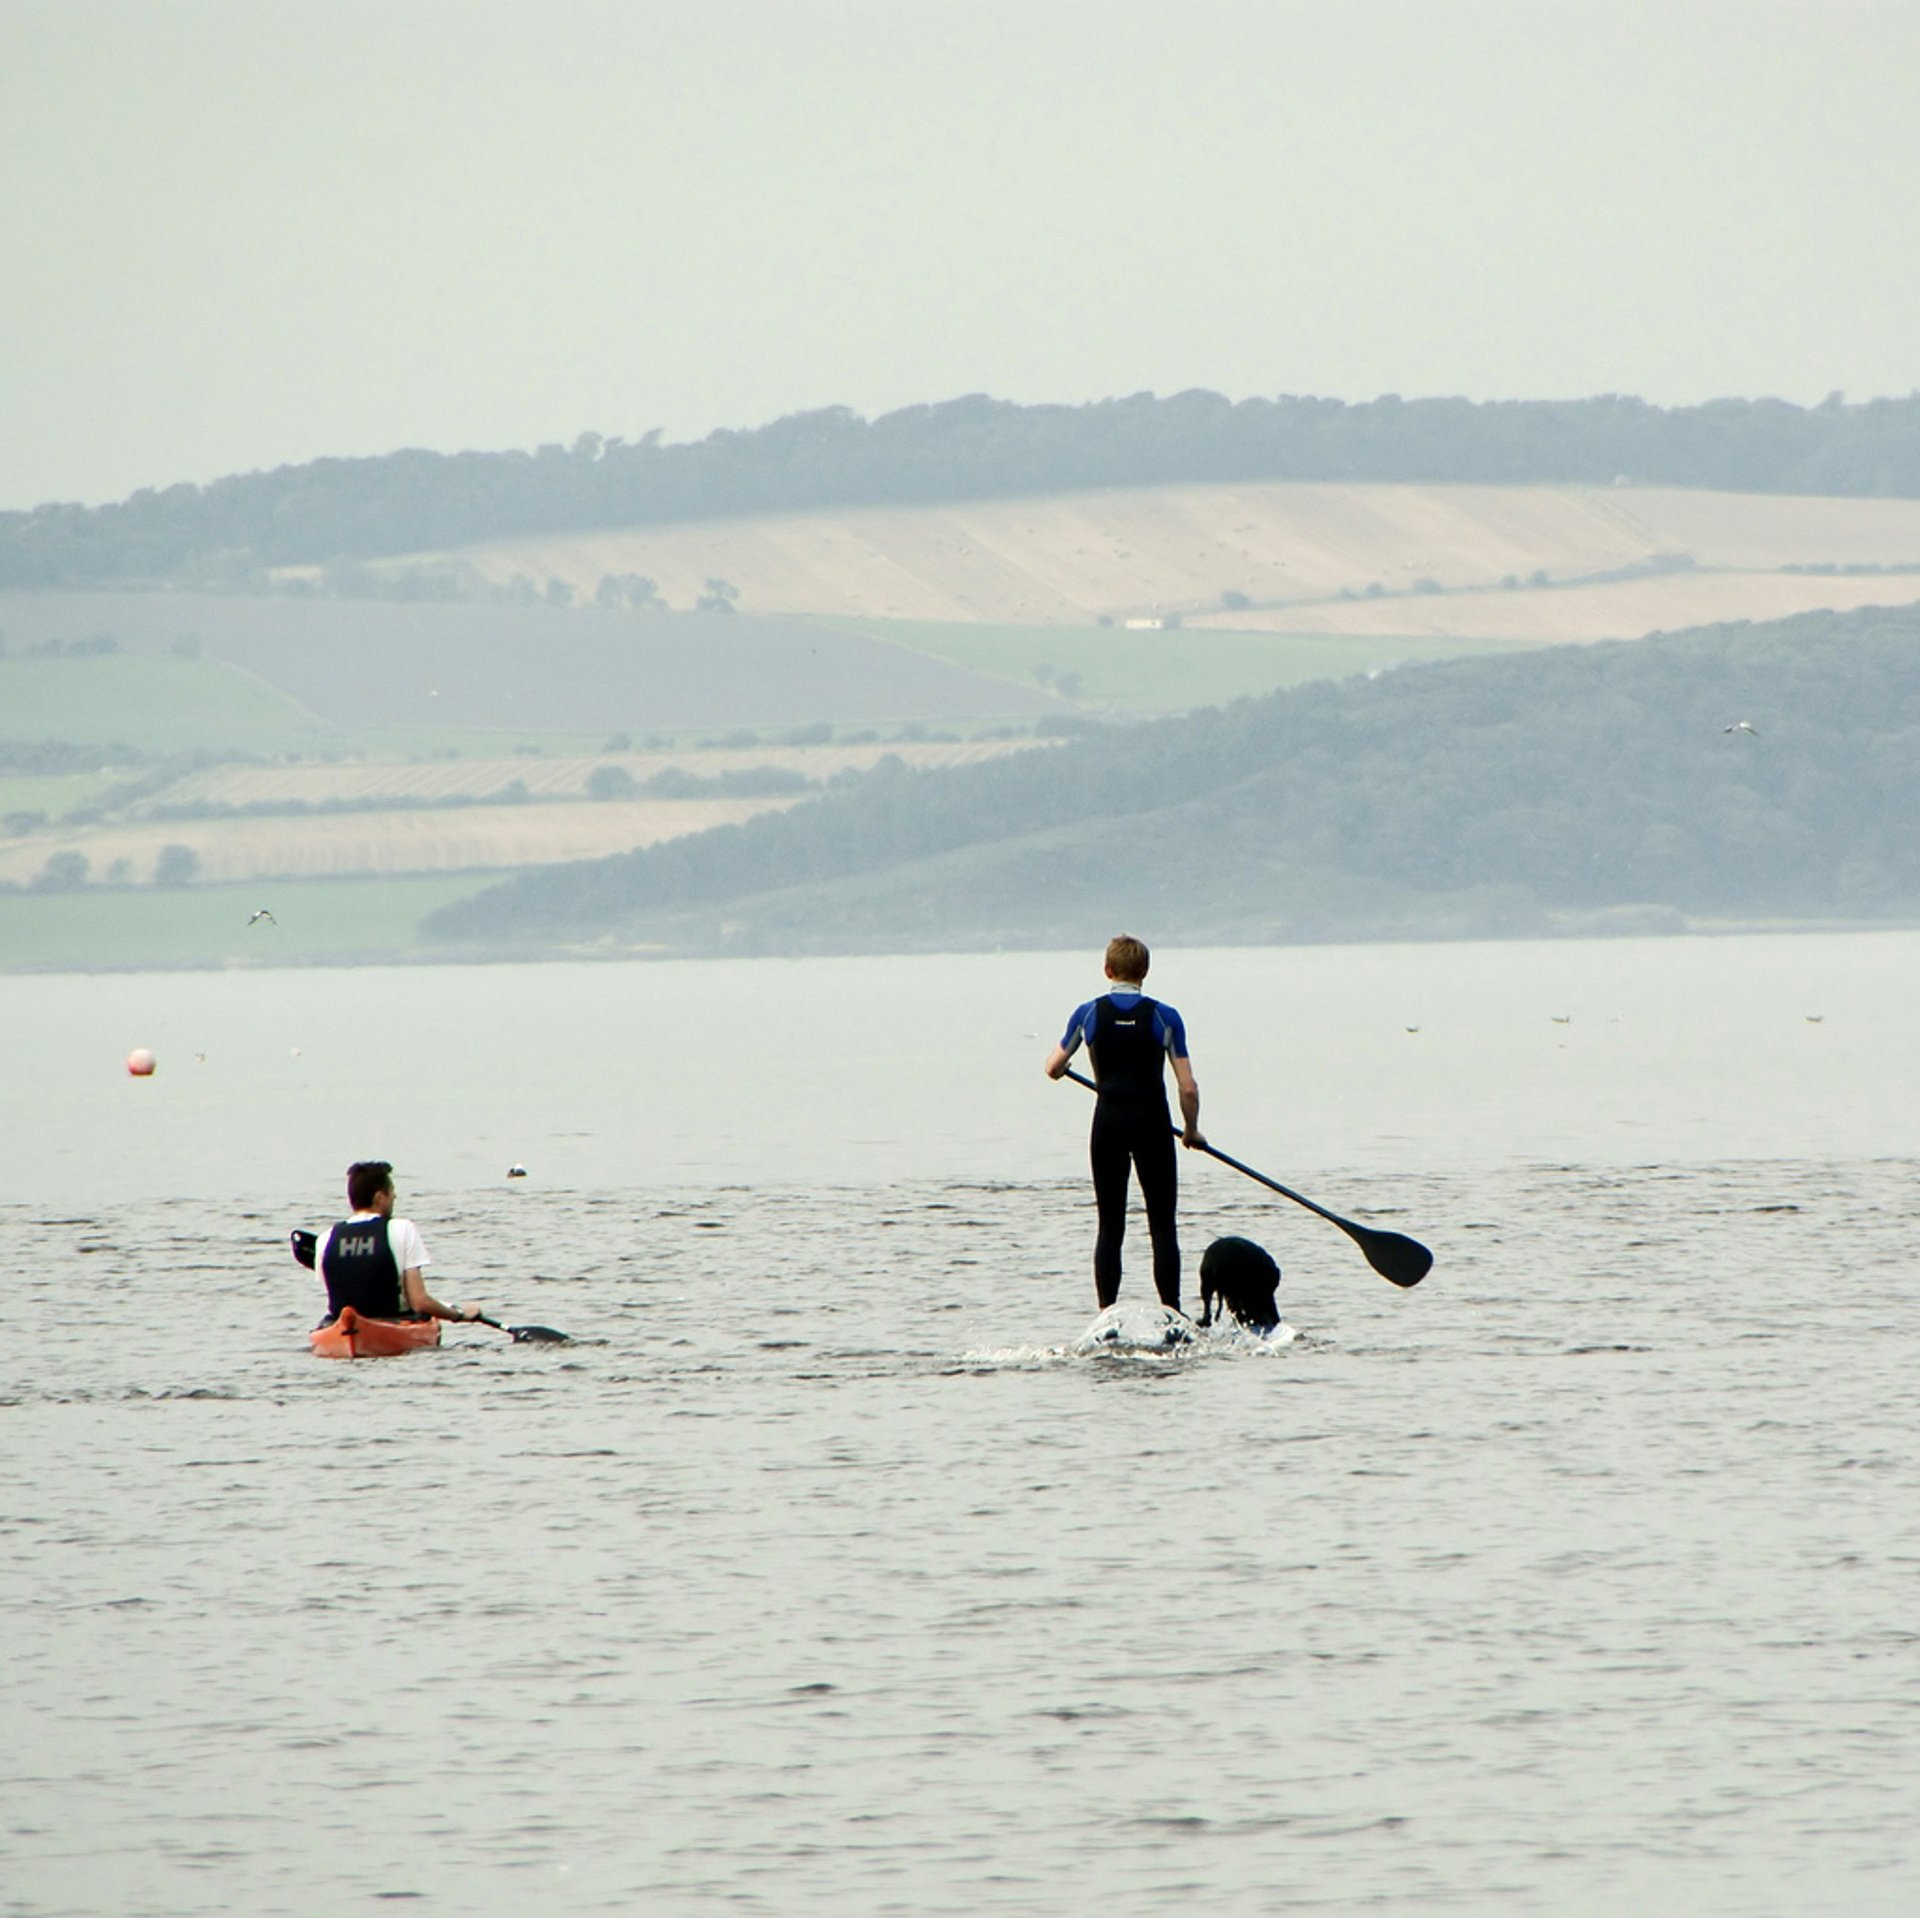 Paddling to Cramond Island: closer view of man and dog on surf board 2020